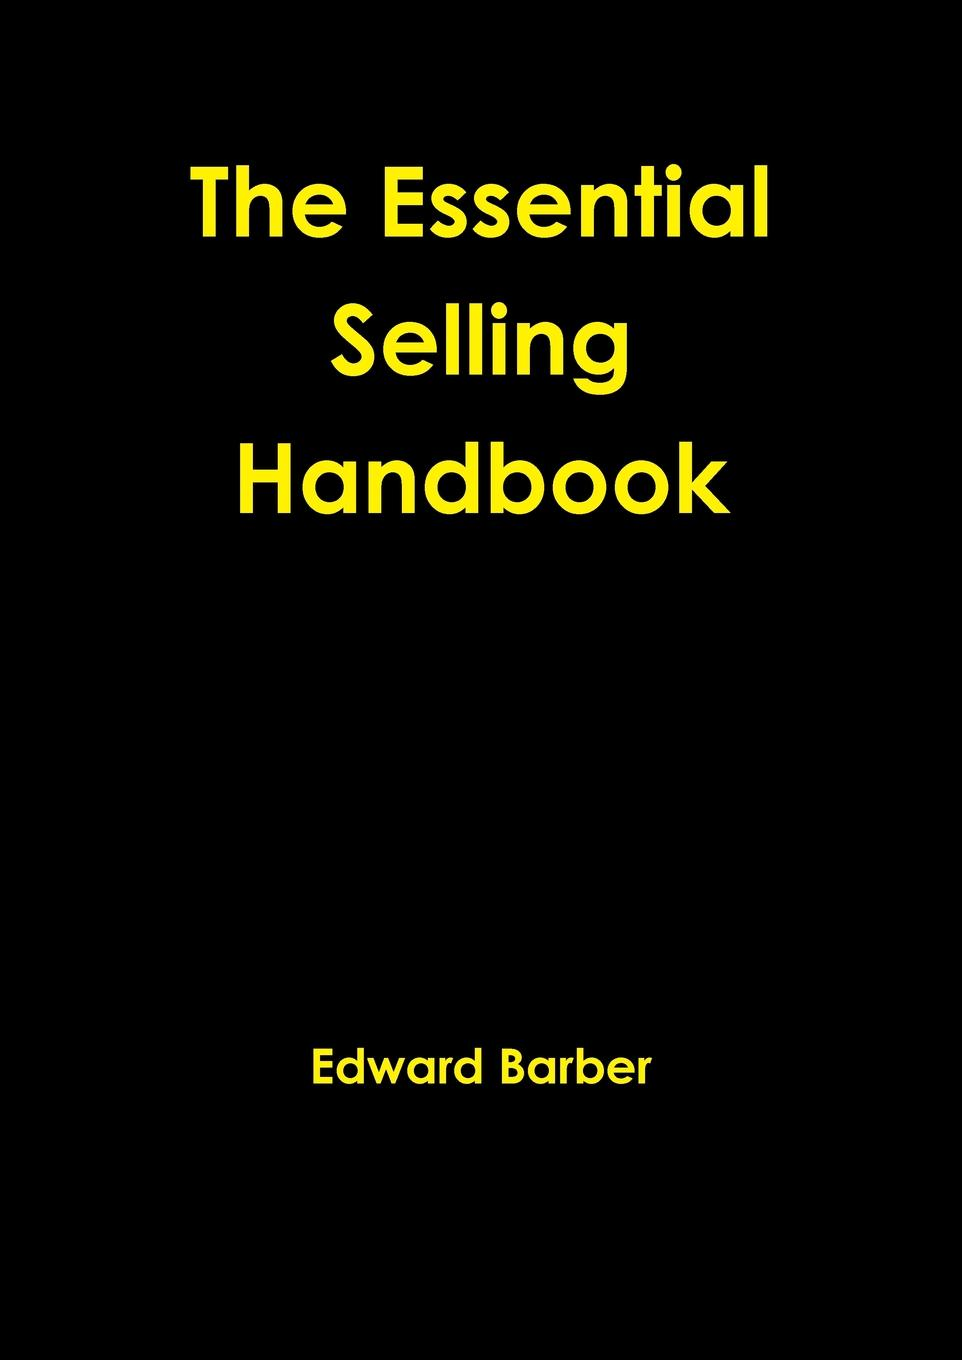 jonathan whistman the sales boss the real secret to hiring training and managing a sales team Edward Barber The Essential Selling Handbook